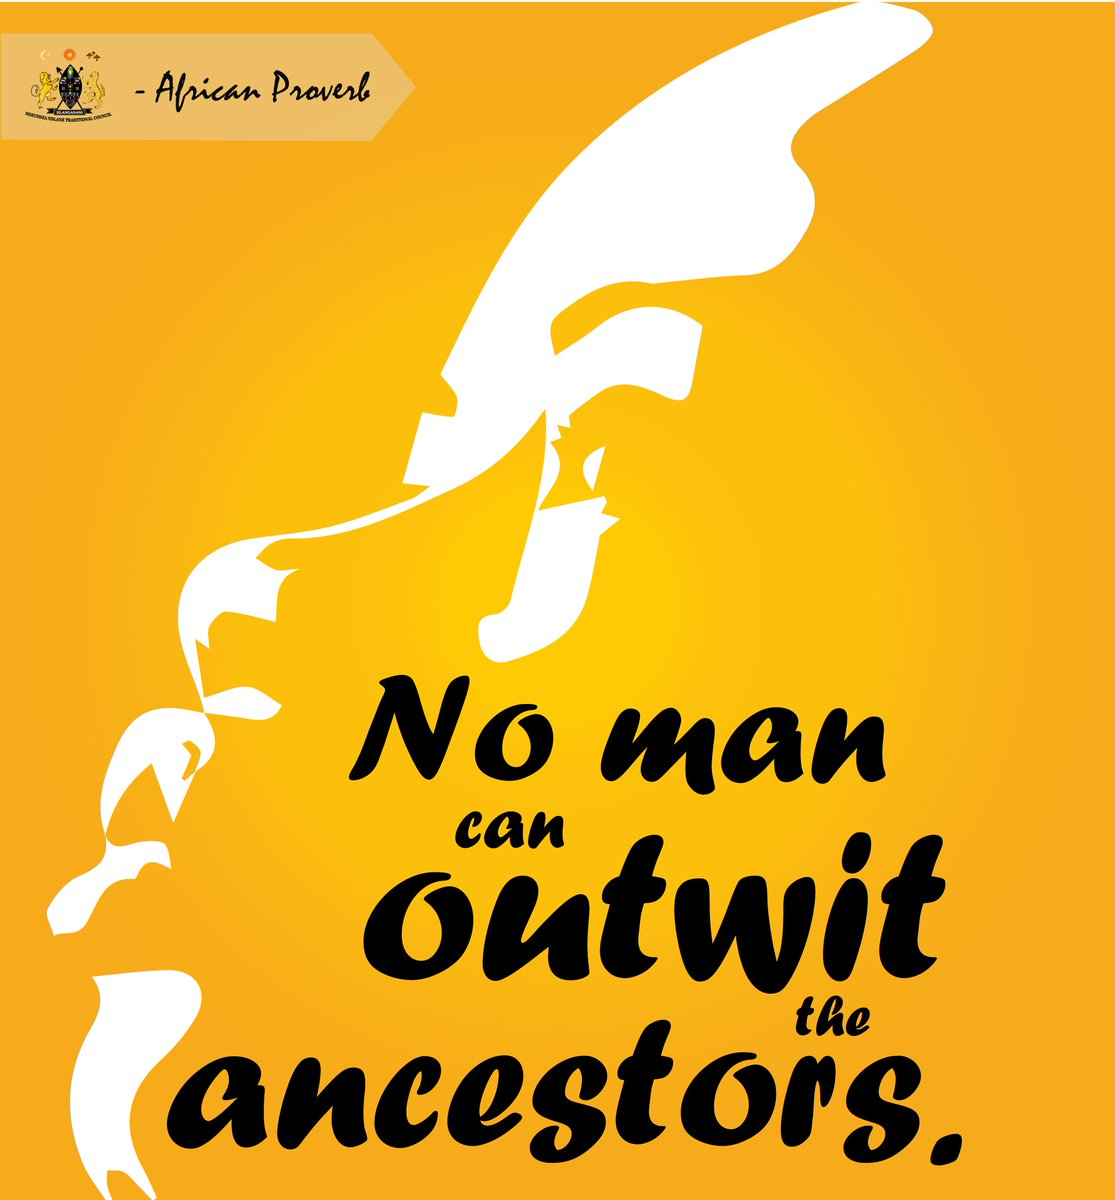 No man can outwit the ancestors  #africanproverb #motivationalquote <br>http://pic.twitter.com/KmsCnNwopU